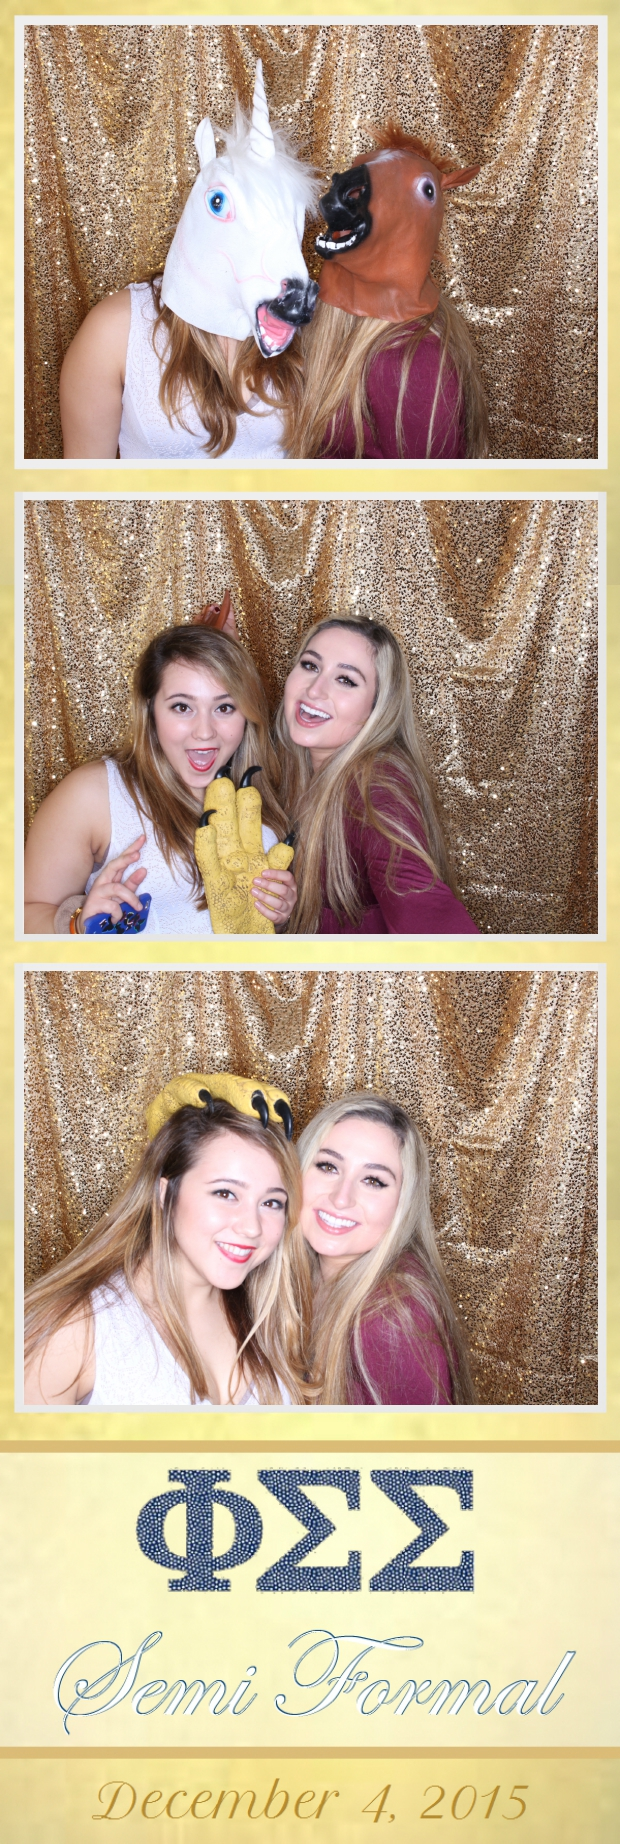 Guest House Events Photo Booth Phi Sigma Sigma Semi Formal (76).jpg